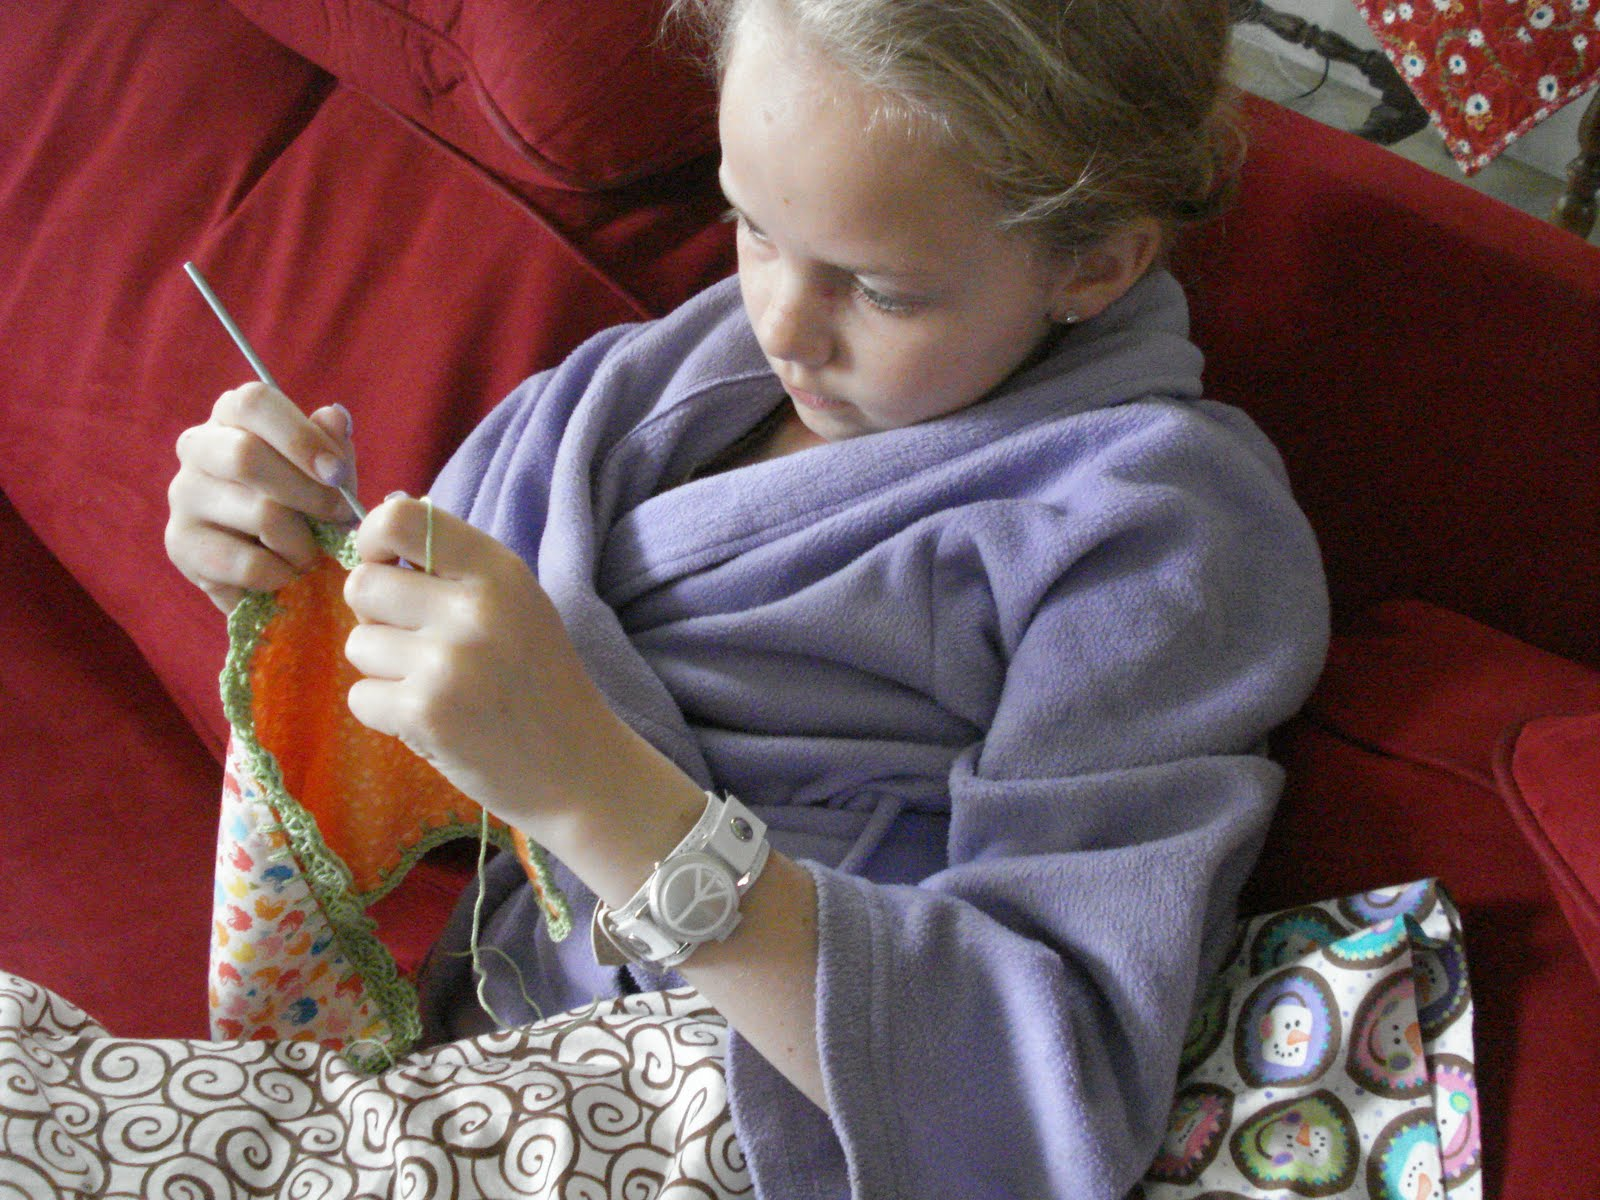 Crocheting Too Tightly : ... ... concentrating on her stitch count and not pulling too tightly